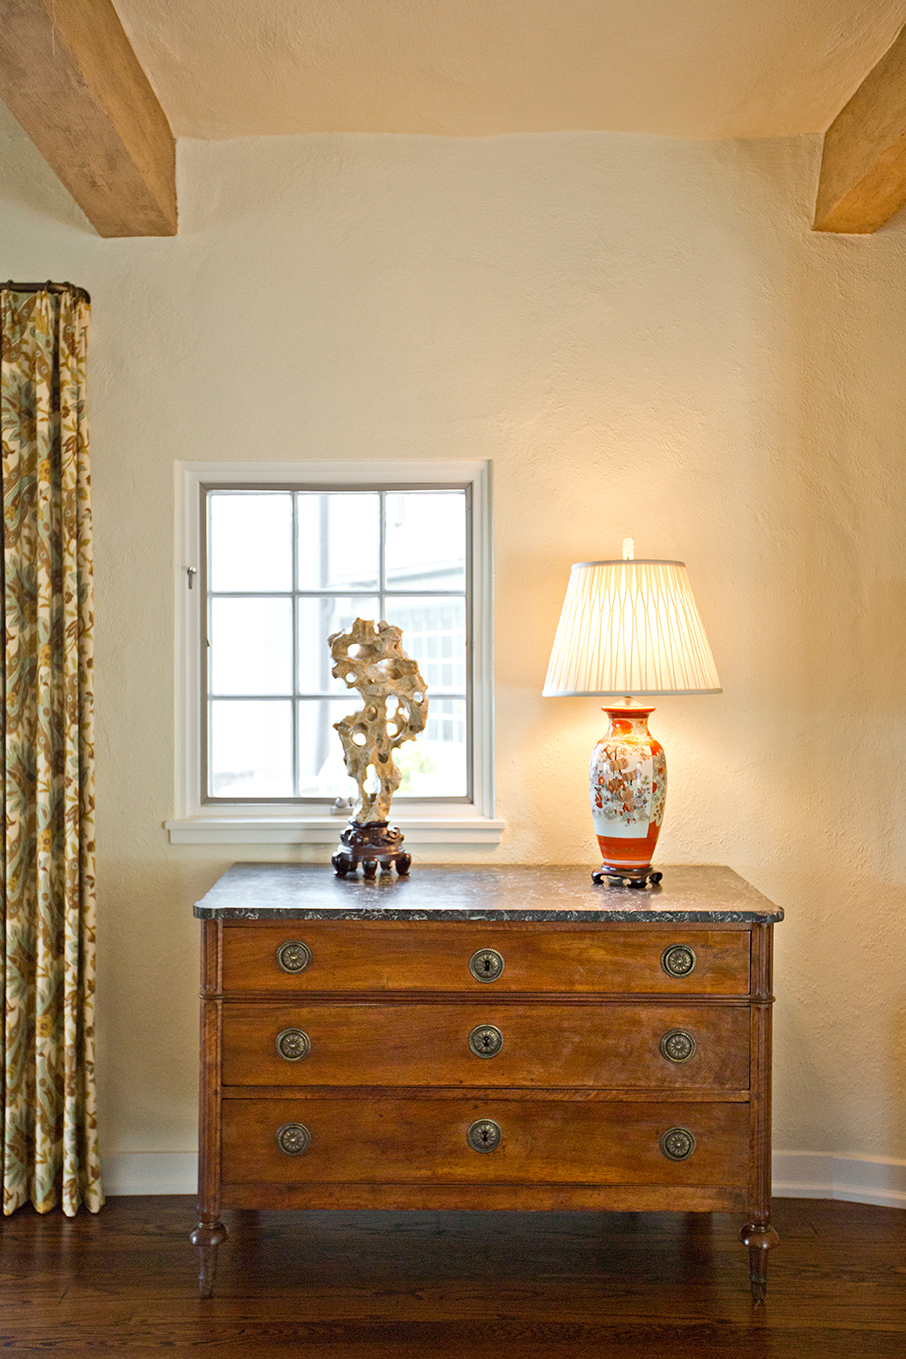 DIGS'designers will always advocate for harmony when it comes to adding visual interest. Here, the French Regency walnut commode echoes the wood ceiling beams. Framed with natural light, the Chinese Scholars rock positively glows.